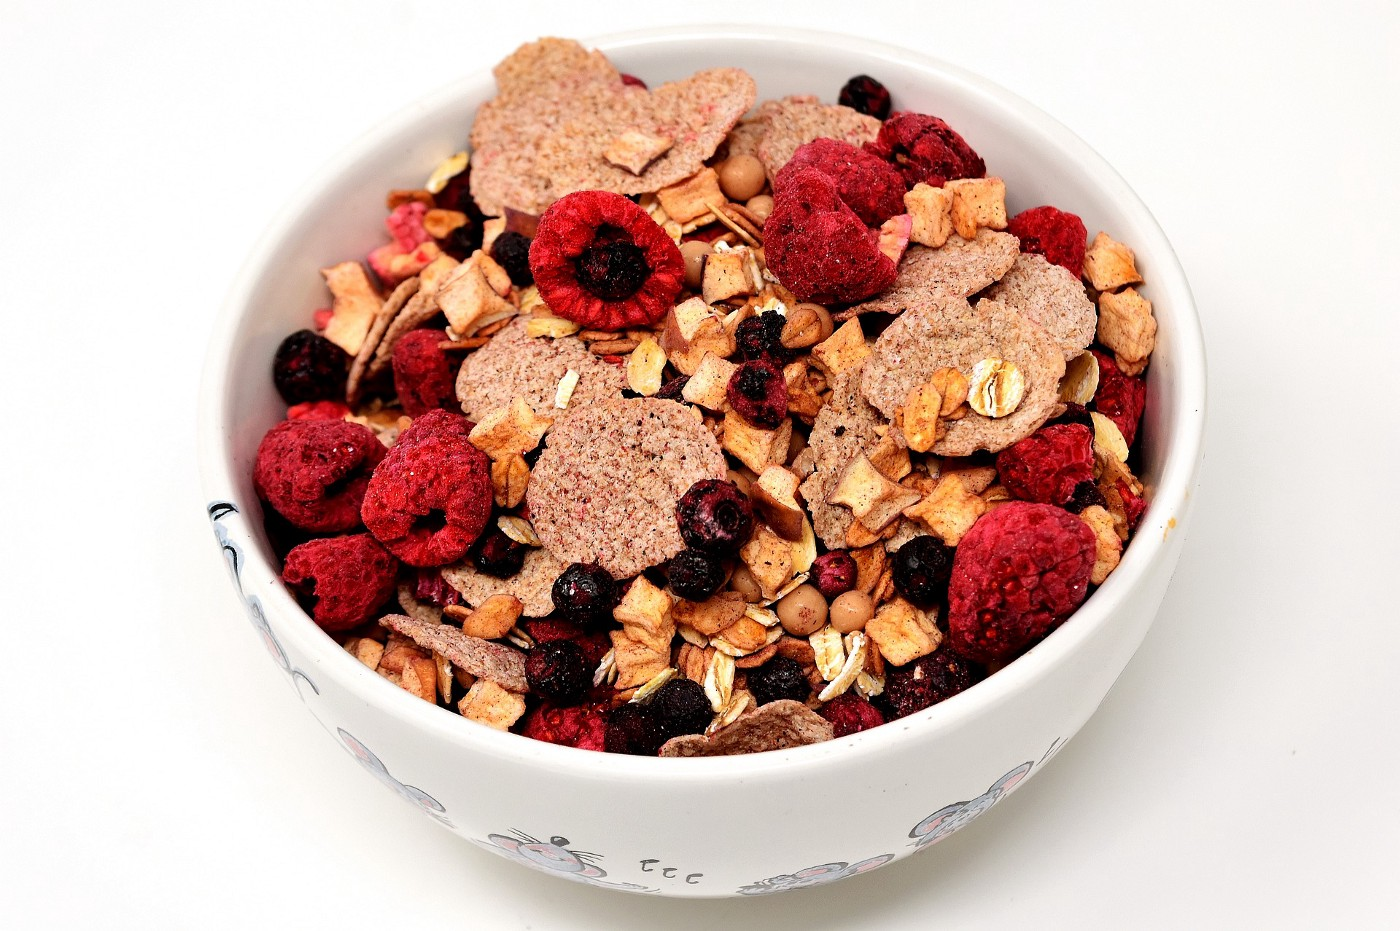 Bowl of muesli cereal with flakes, dried cranberries, fresh raspberries.